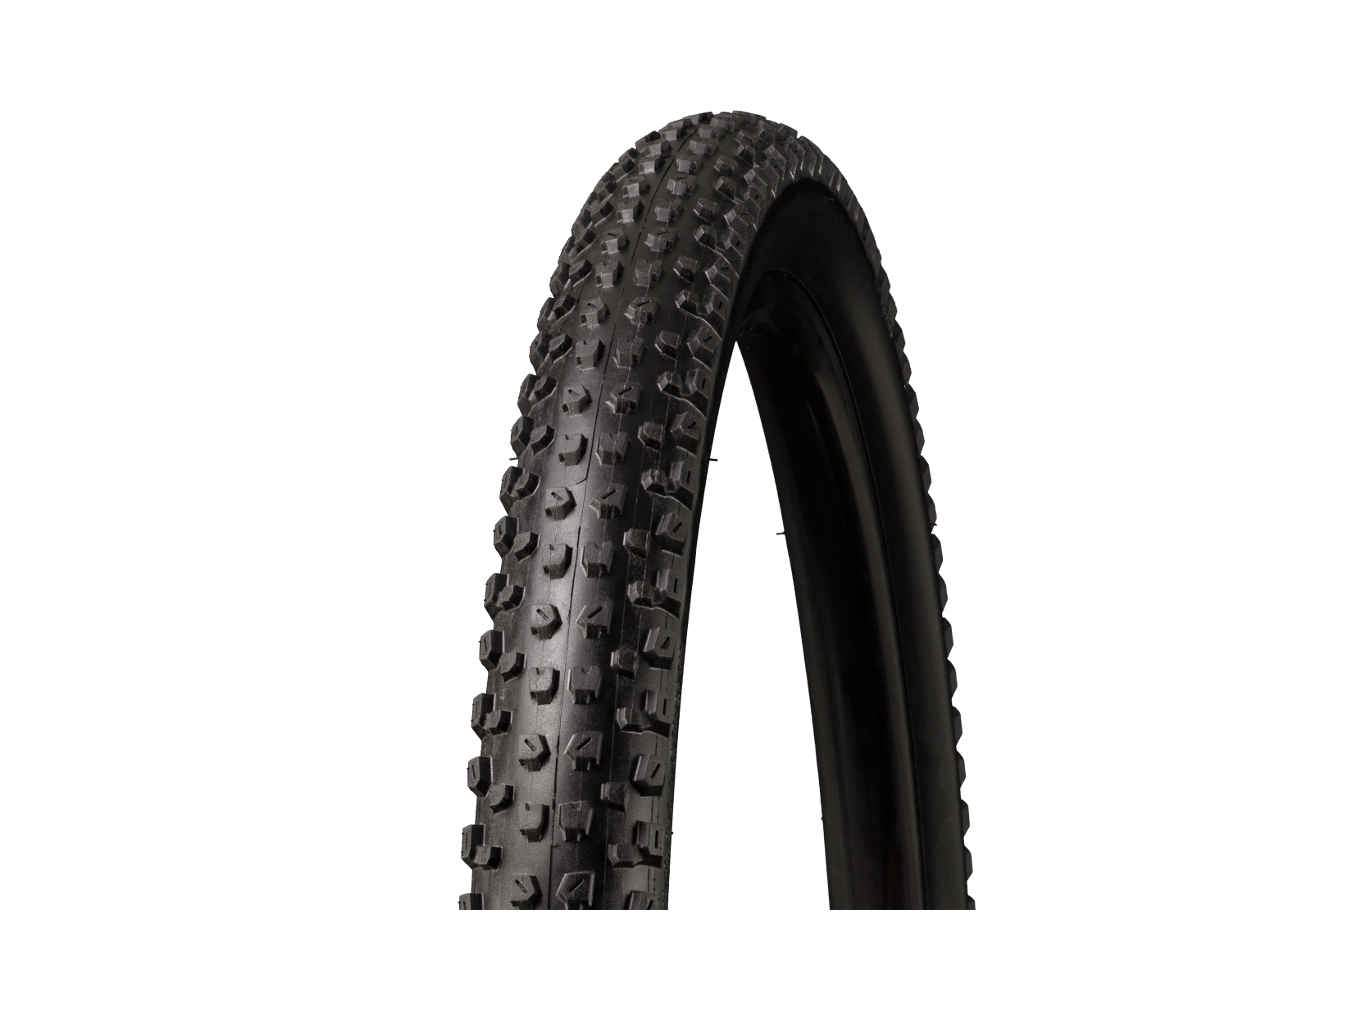 Bontrager SE3 Team Issue TLR Tyre - Cycles Galleria Melbourne